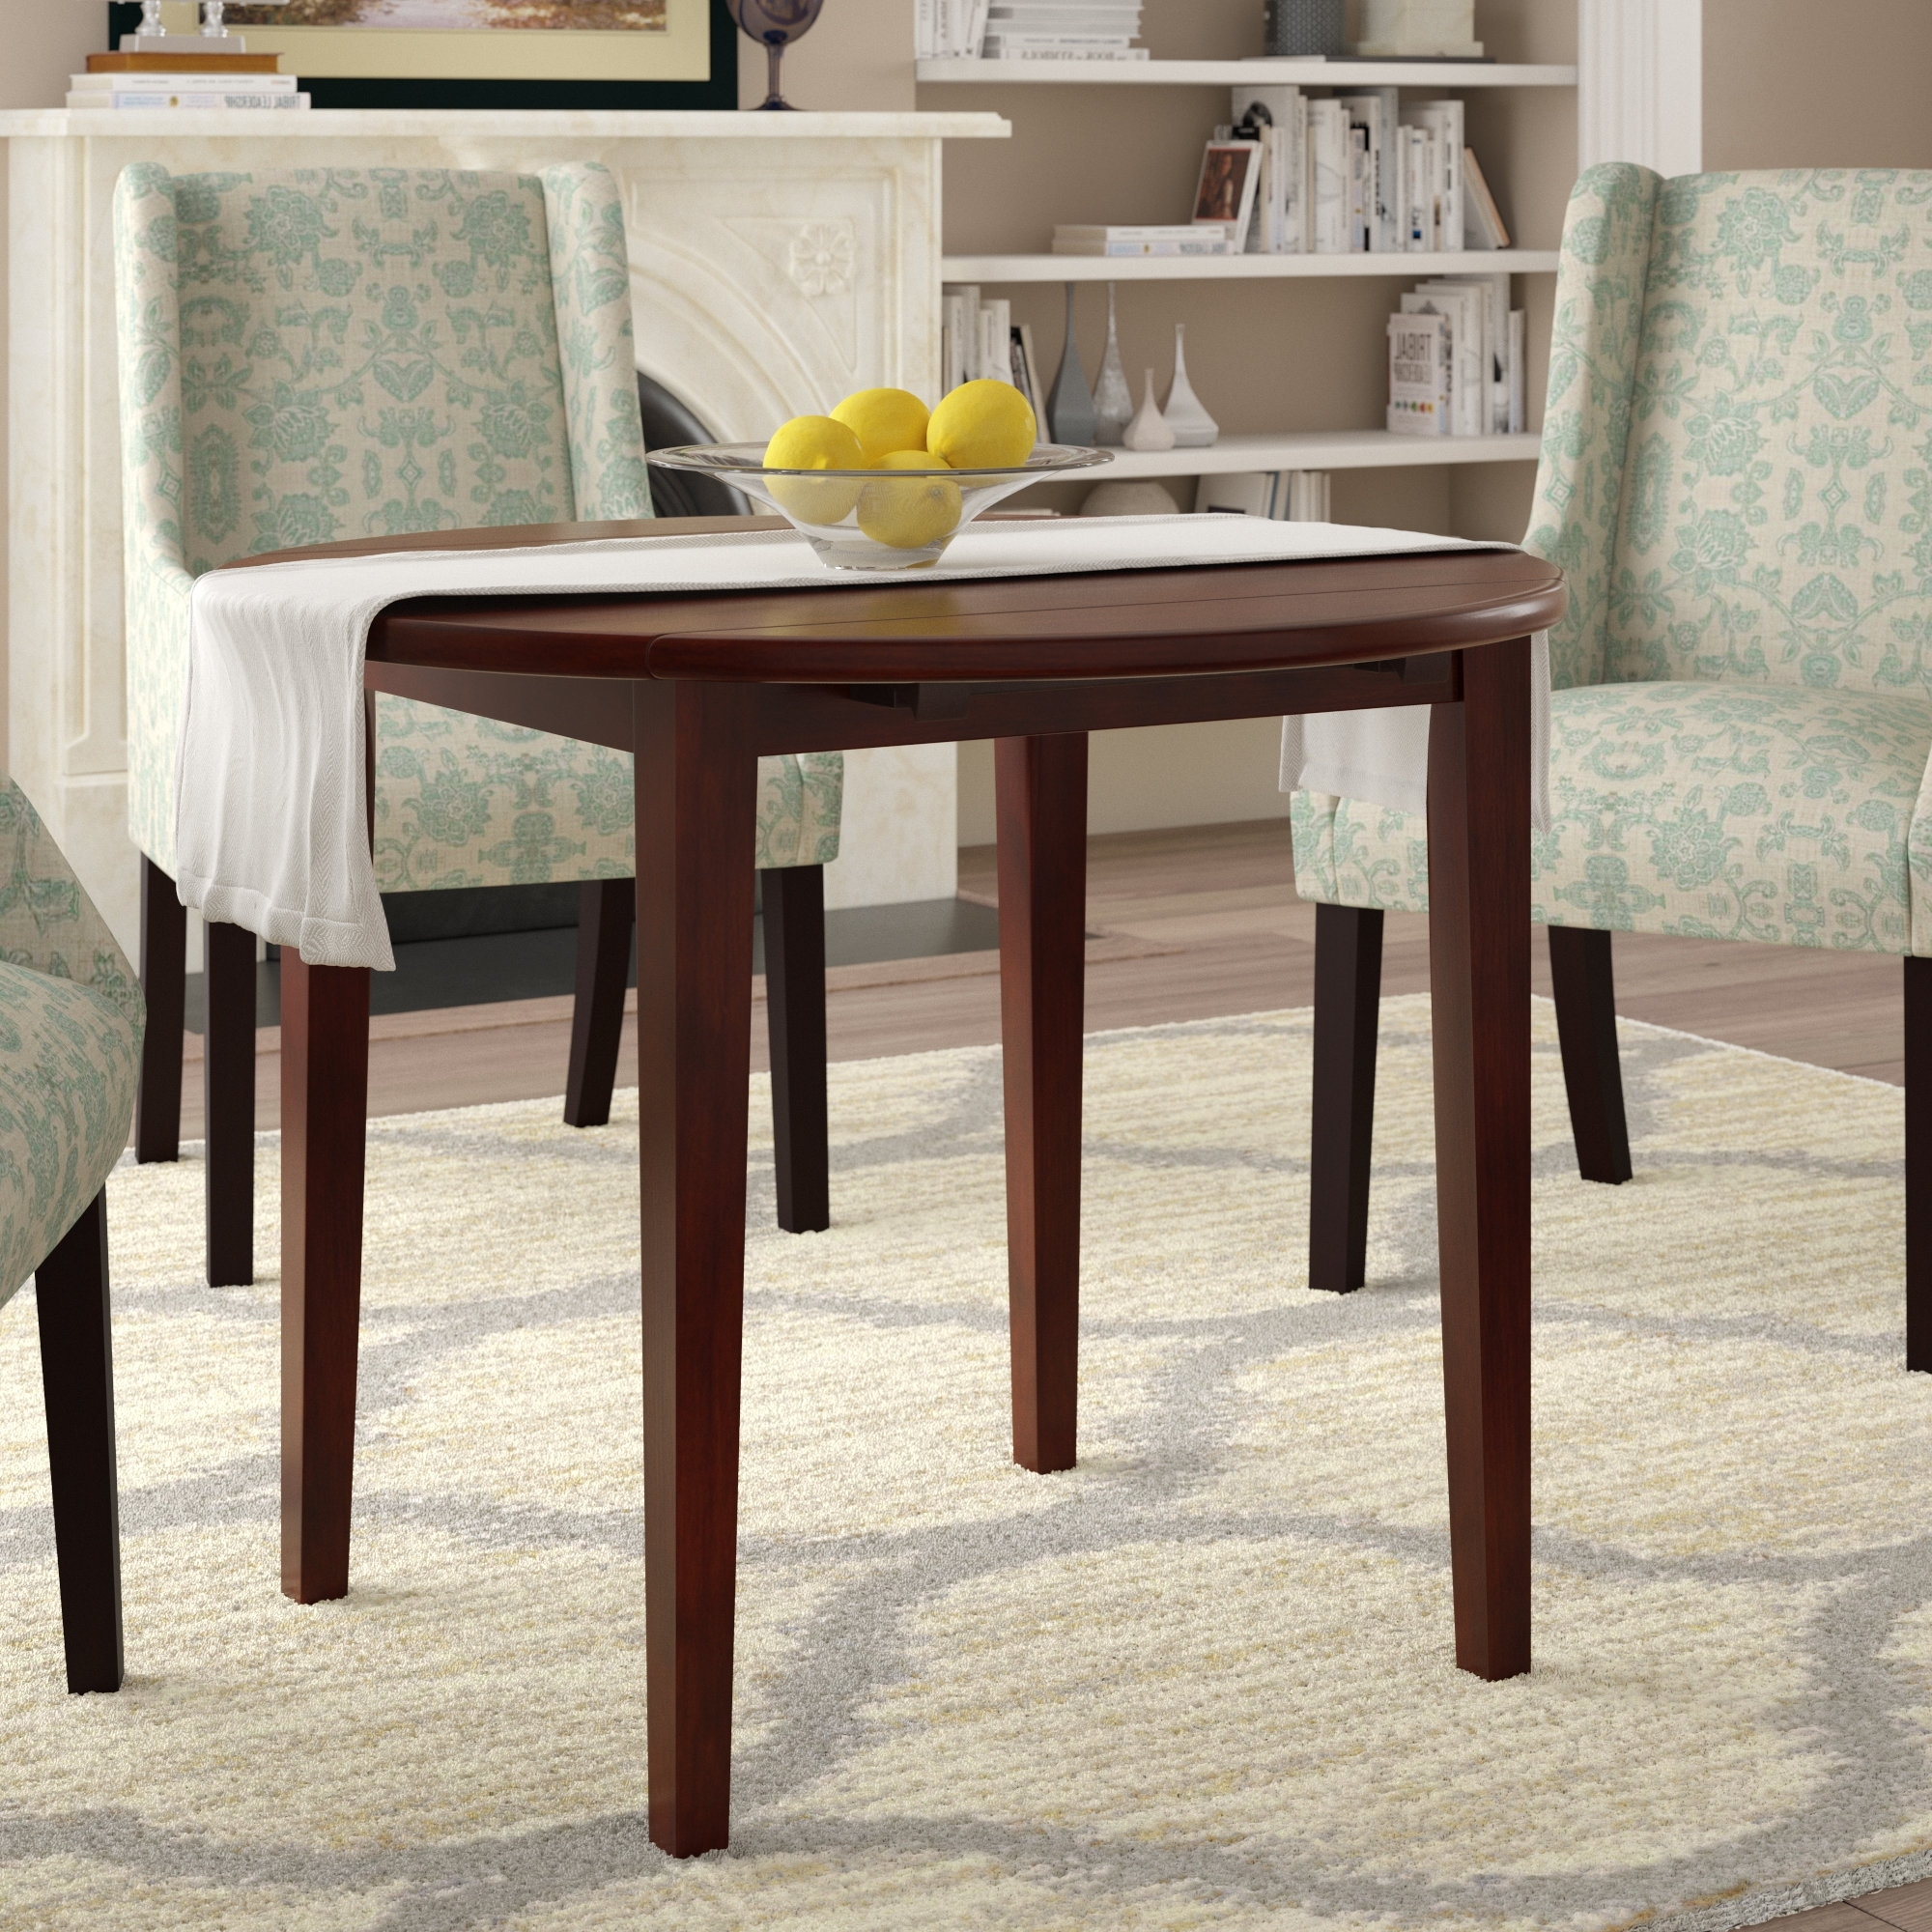 Most Current Cheap Drop Leaf Dining Tables Pertaining To Alcott Hill Kendall Drop Leaf Dining Table & Reviews (View 7 of 25)